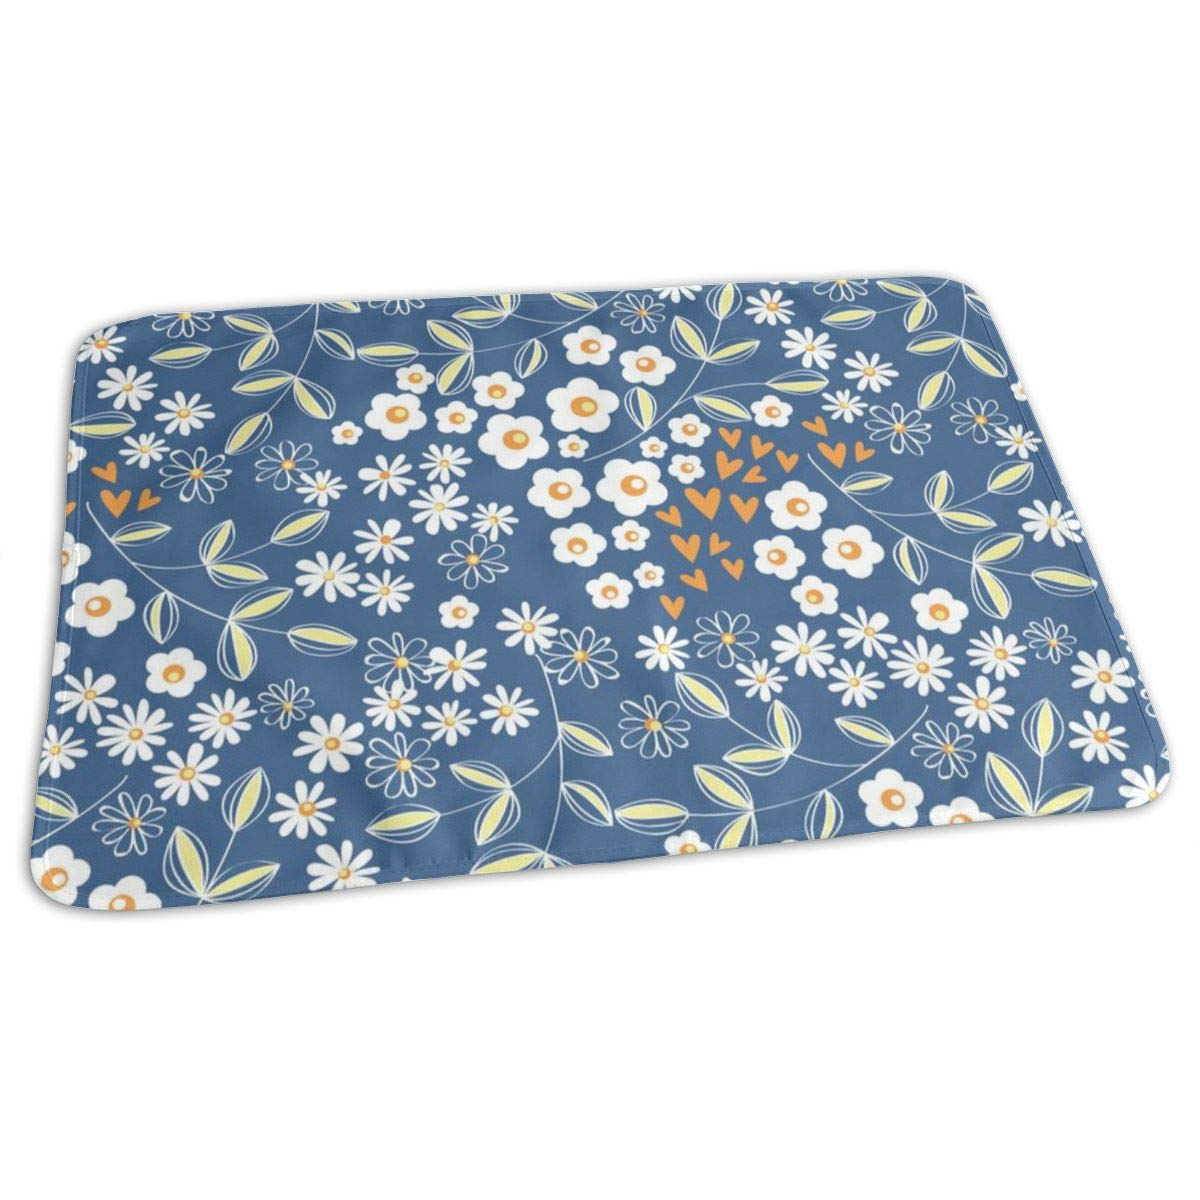 ZZguowuque Portable Changing Pad -Reusable Waterproof Baby Changing Pad(9.457.09 Inch) Geometric Floral